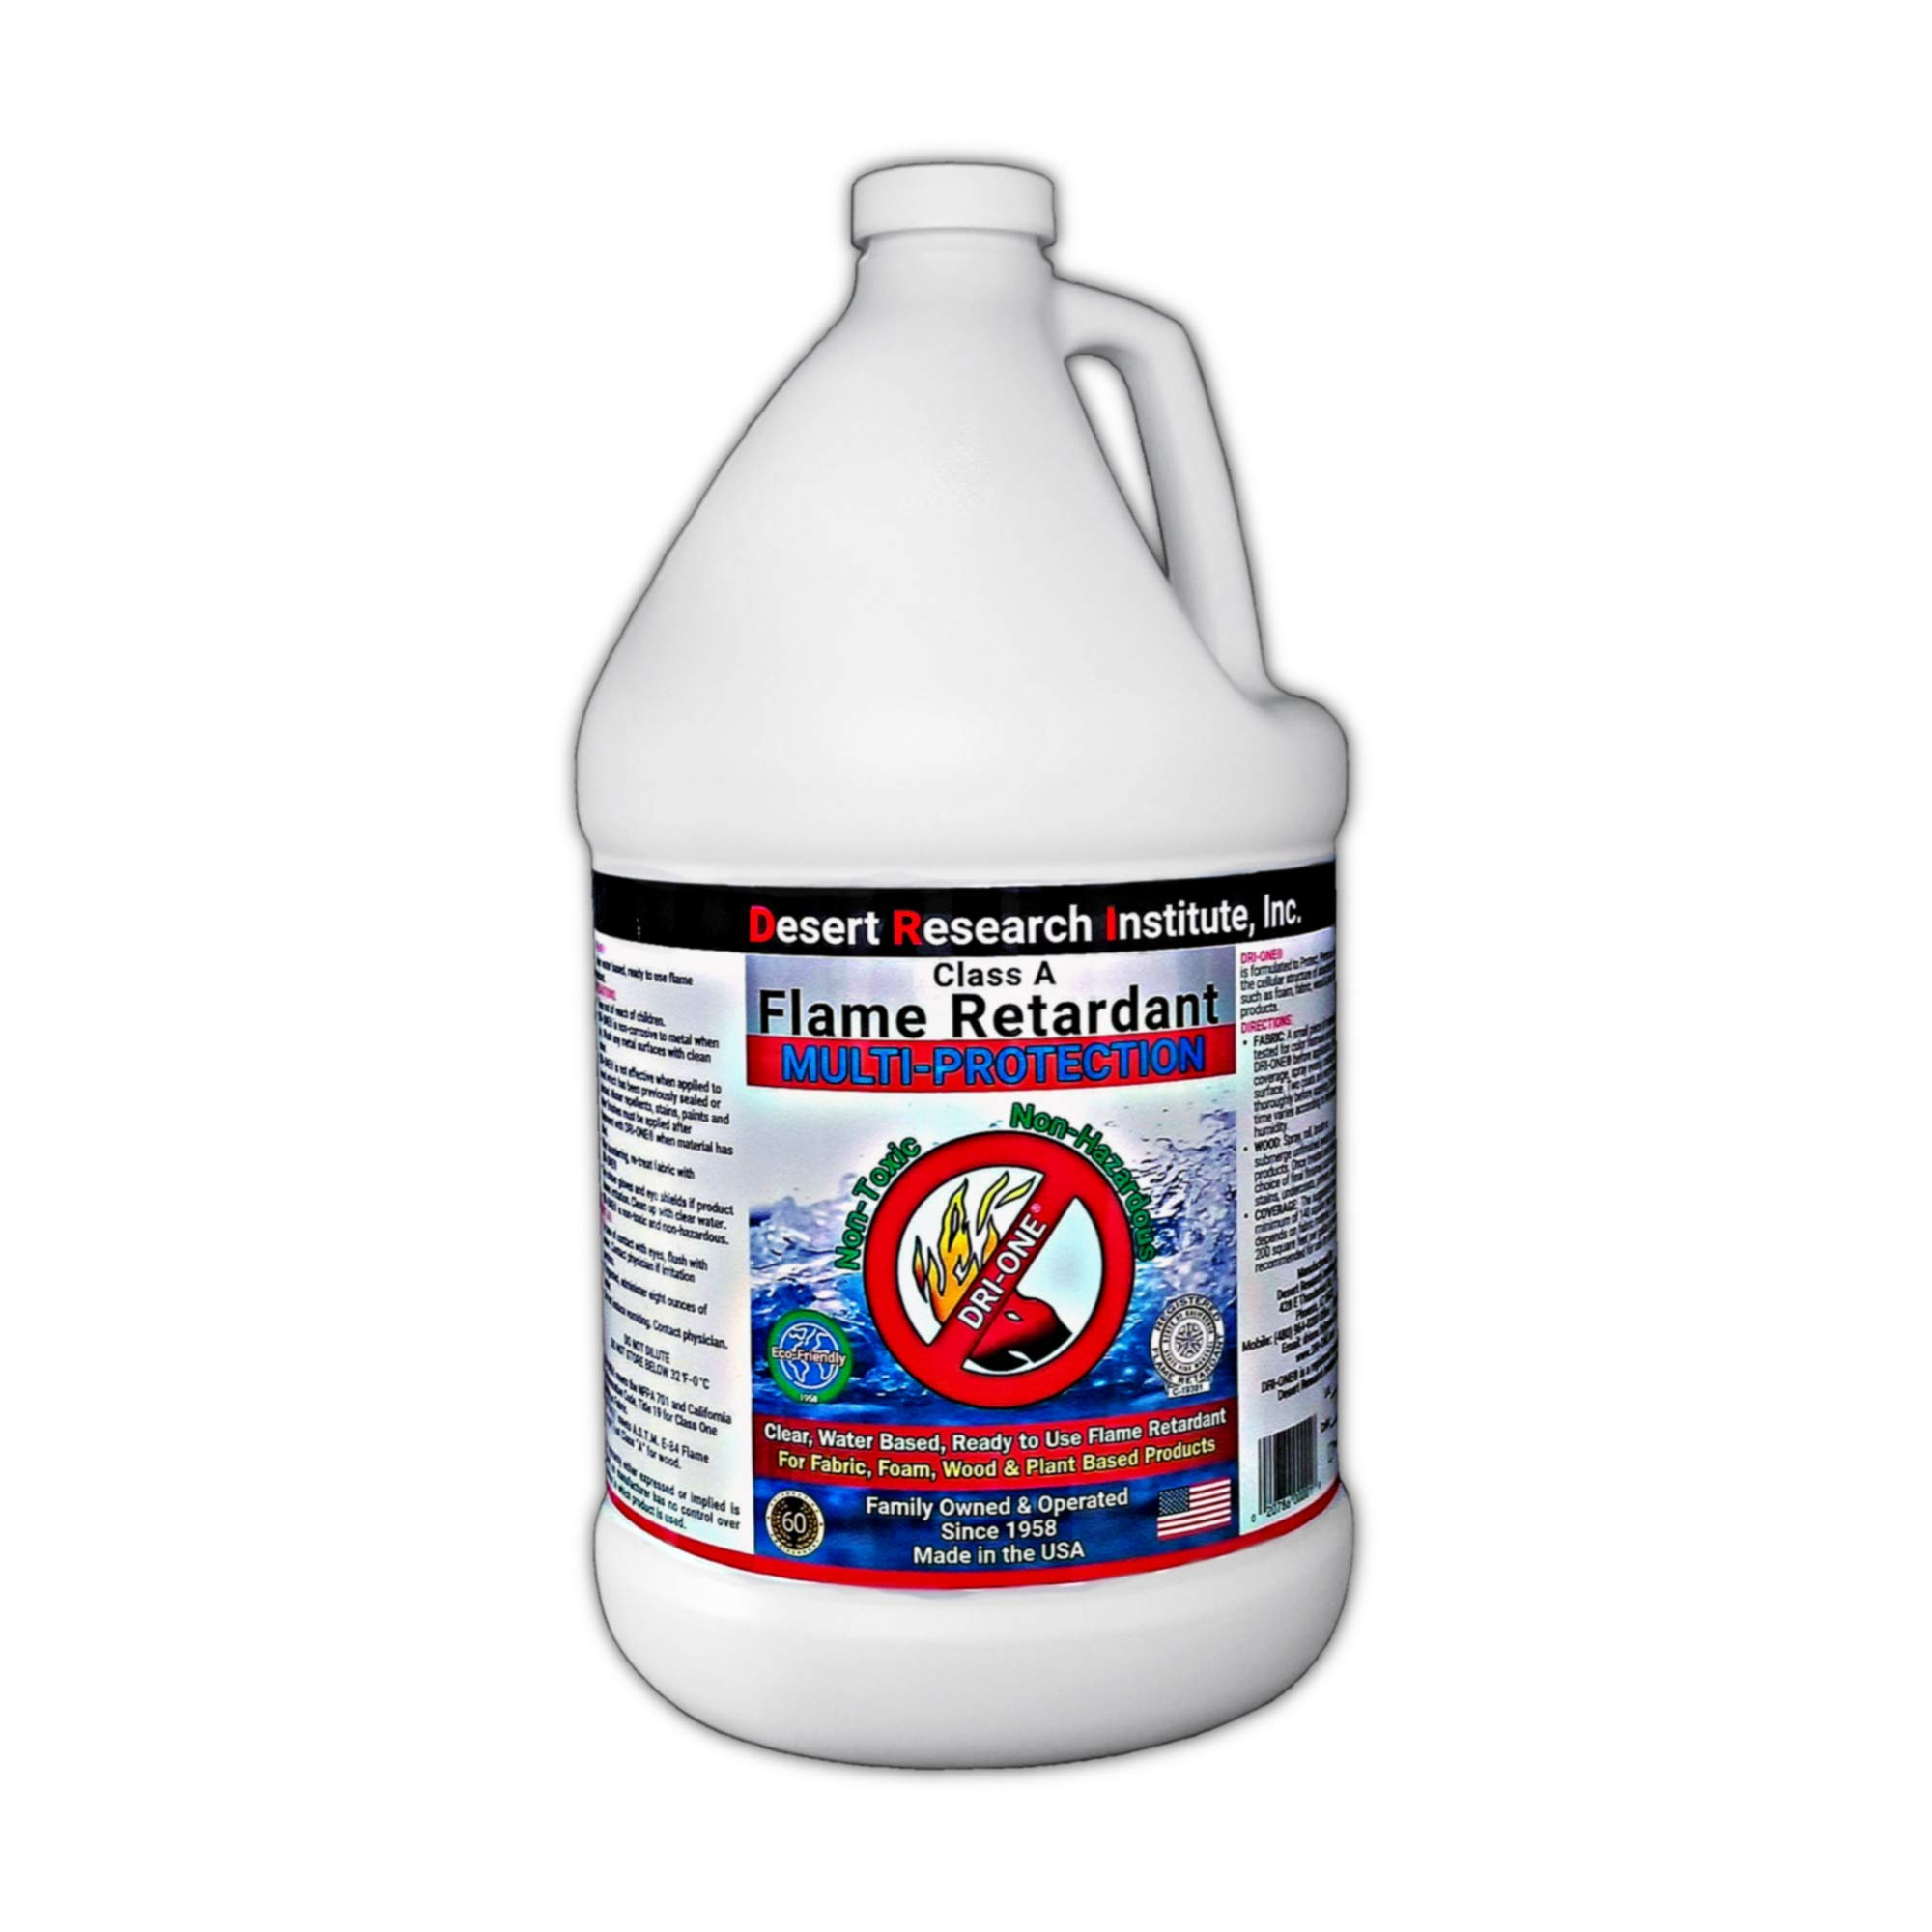 Fire Retardant Spray (Class A for Fabric, Wood, Theater Curtains & More) Eco-Safe, Non Toxic, C.A.C. Title-19, ASTM E84, DRI-ONE by Desert Research Institute, Inc. (1)